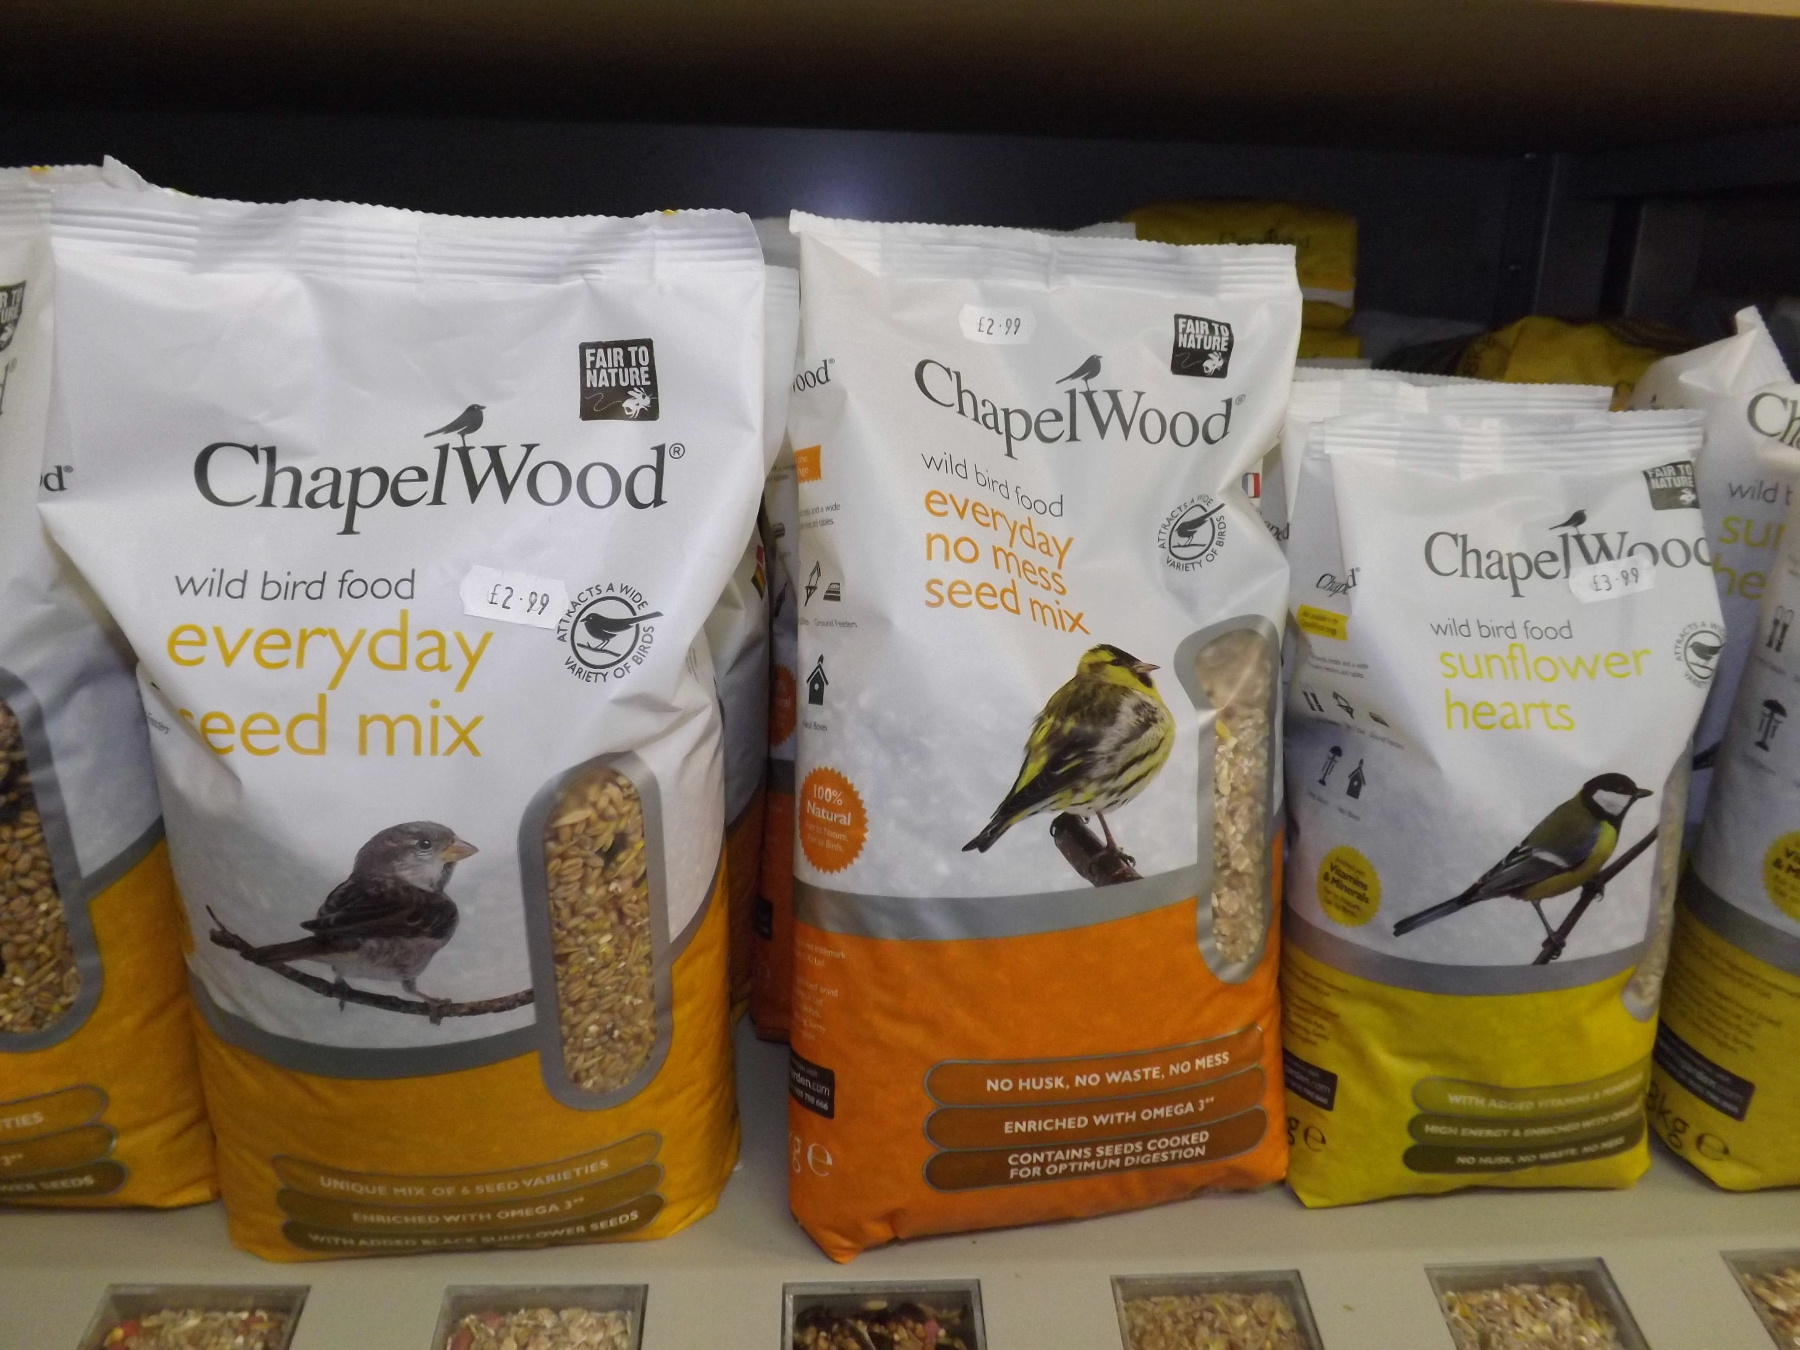 Chapel Wood wild bird feed and bird feeders from Castle Douglas Garden Centre